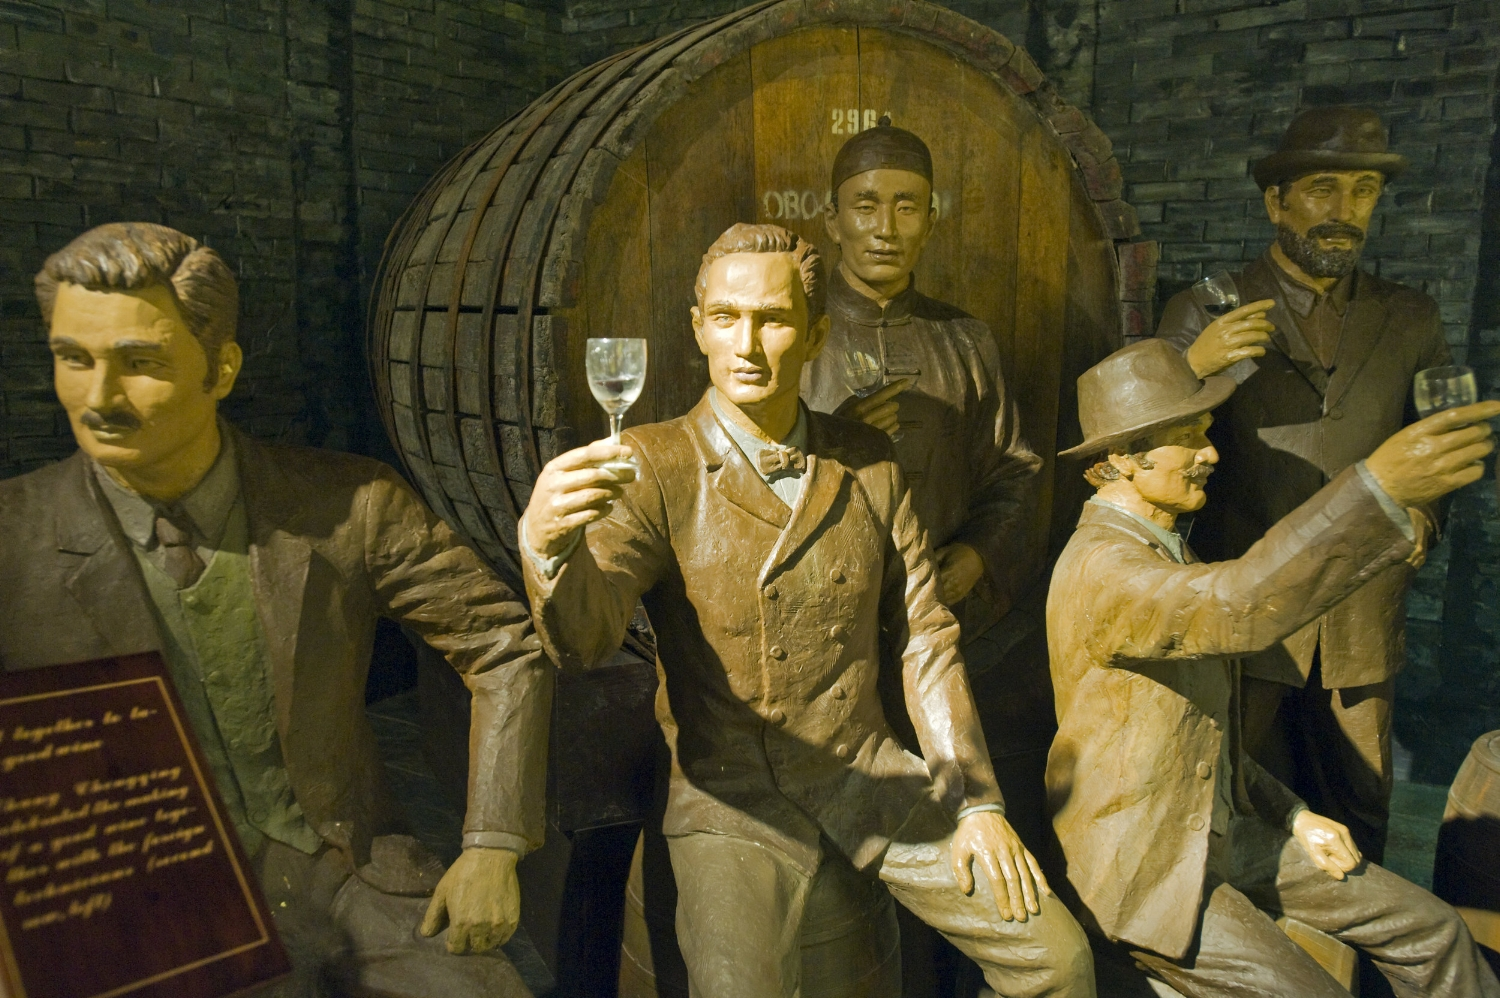 History buffs can check out the Chinese wine history museum.